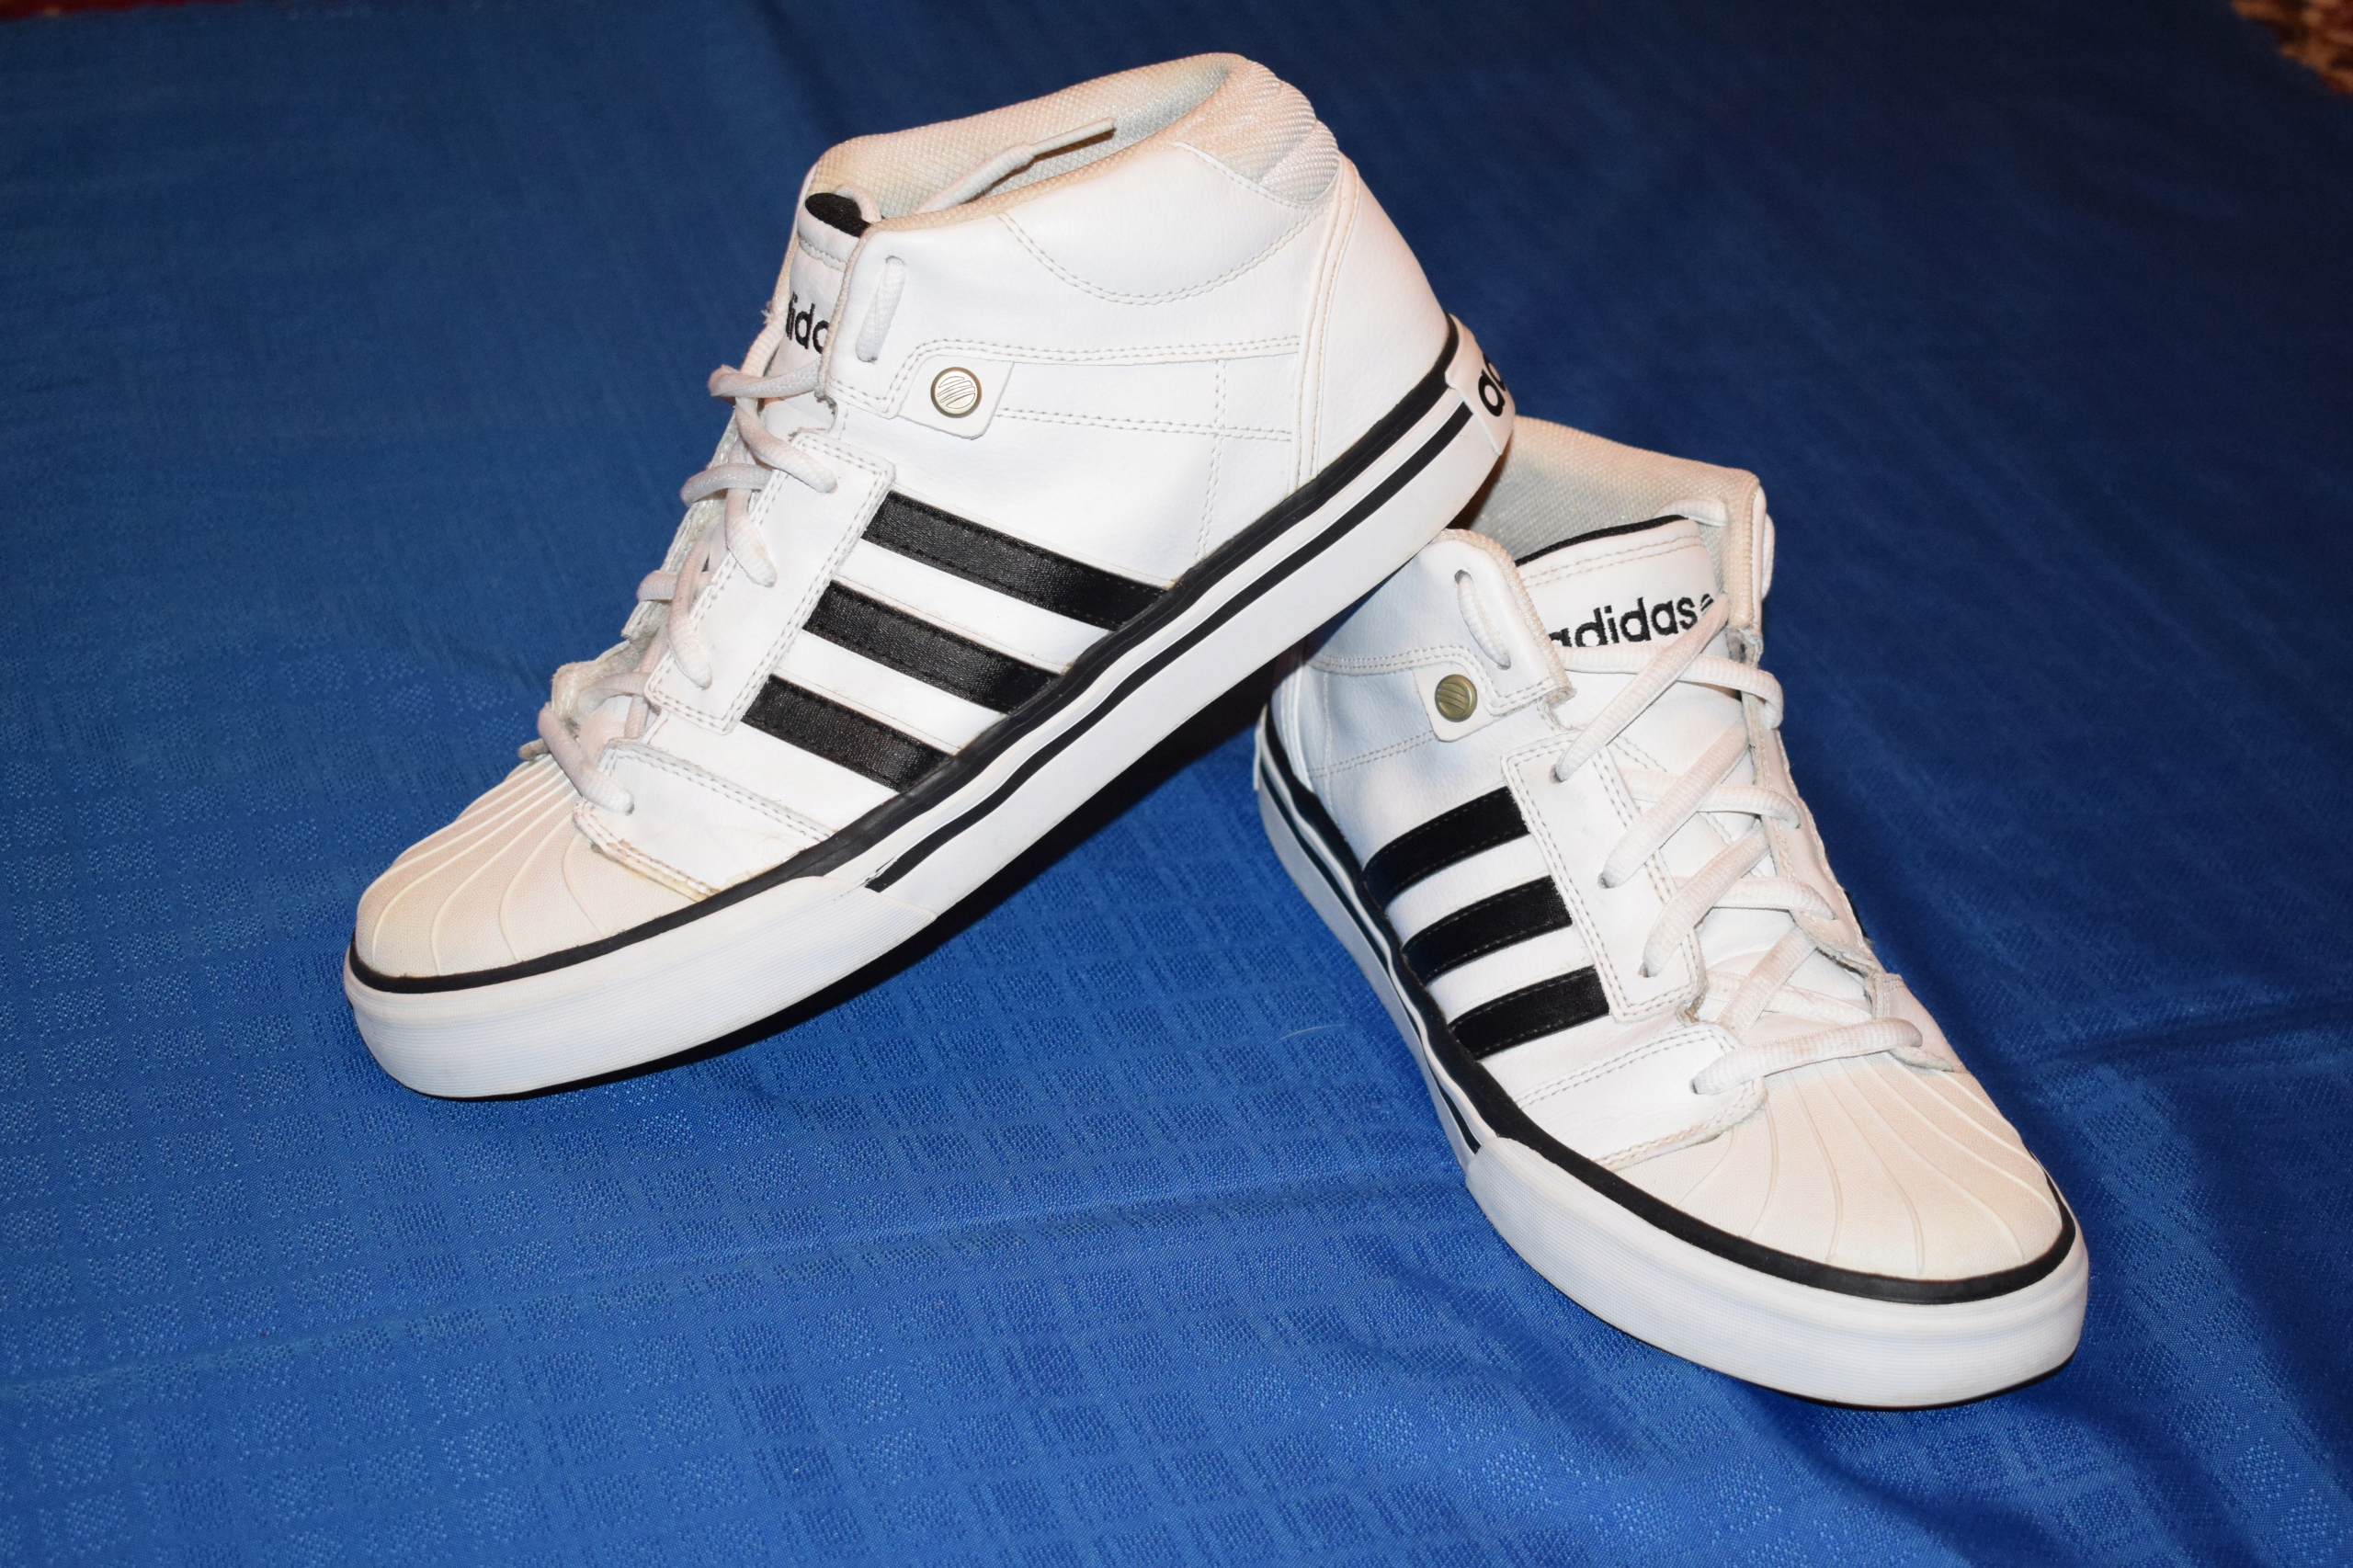 huge selection of 12588 29c86 adidas NEO LABEL EU 44 23 wk.28,5 cm MID